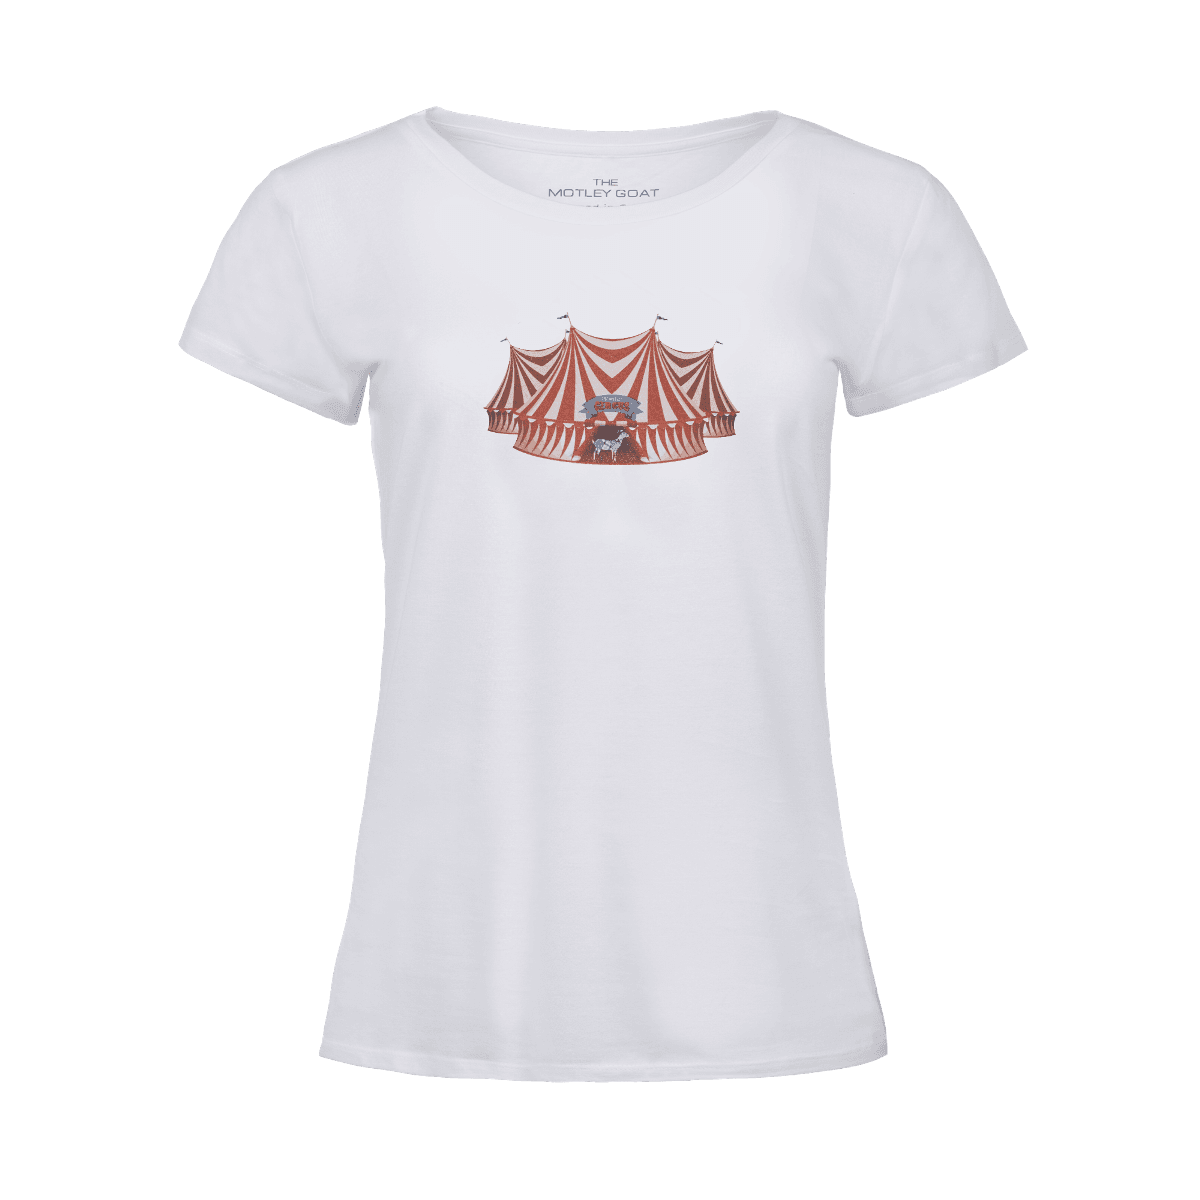 Women's Fitted Cut Jersey T-Shirt